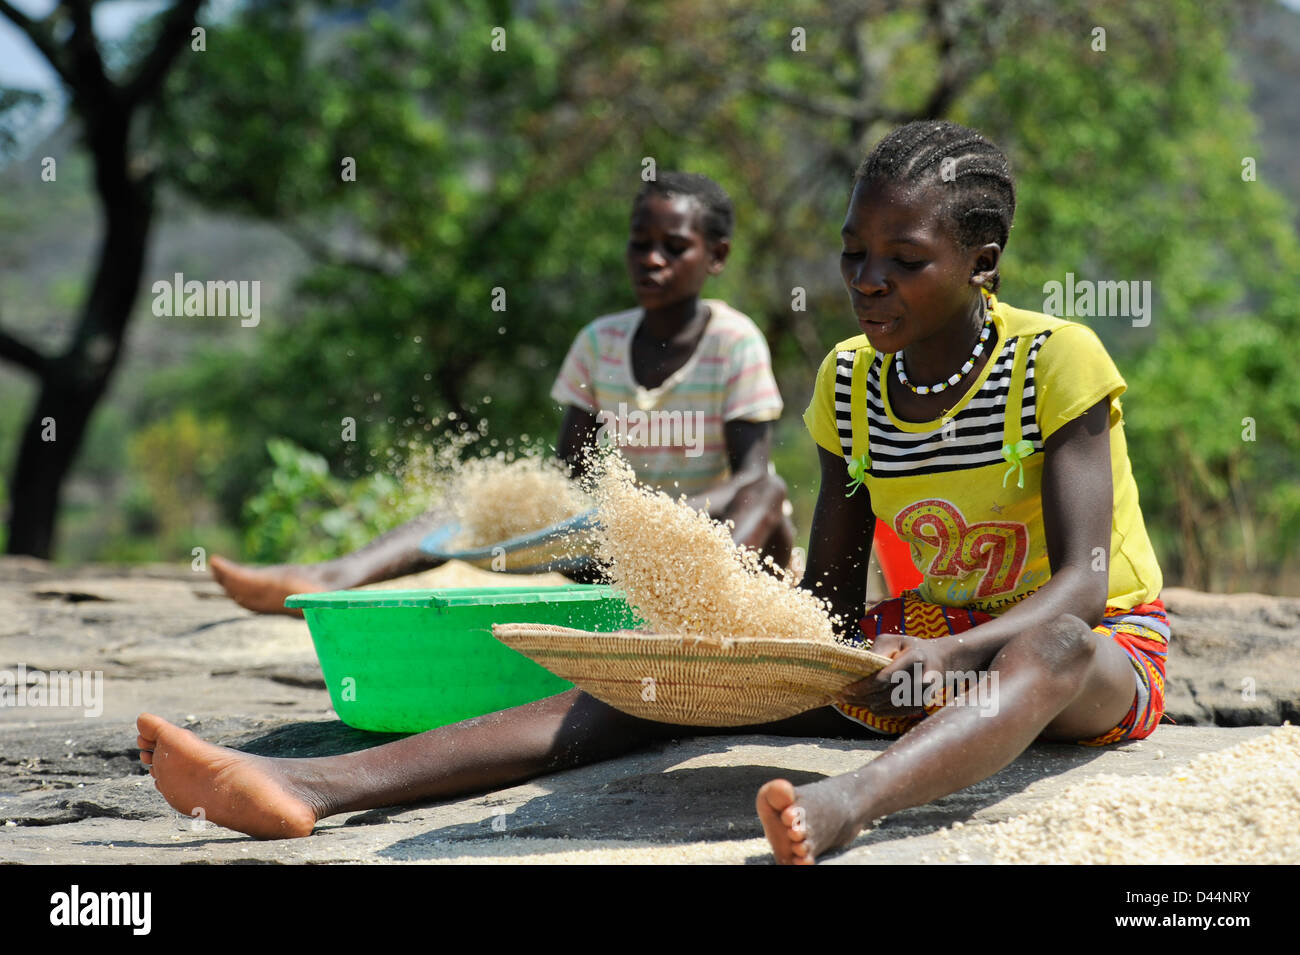 ANGOLA Kwanza Sul, rural development project, village Catchandja, girl winnowing maize, which is the stable food - Stock Image